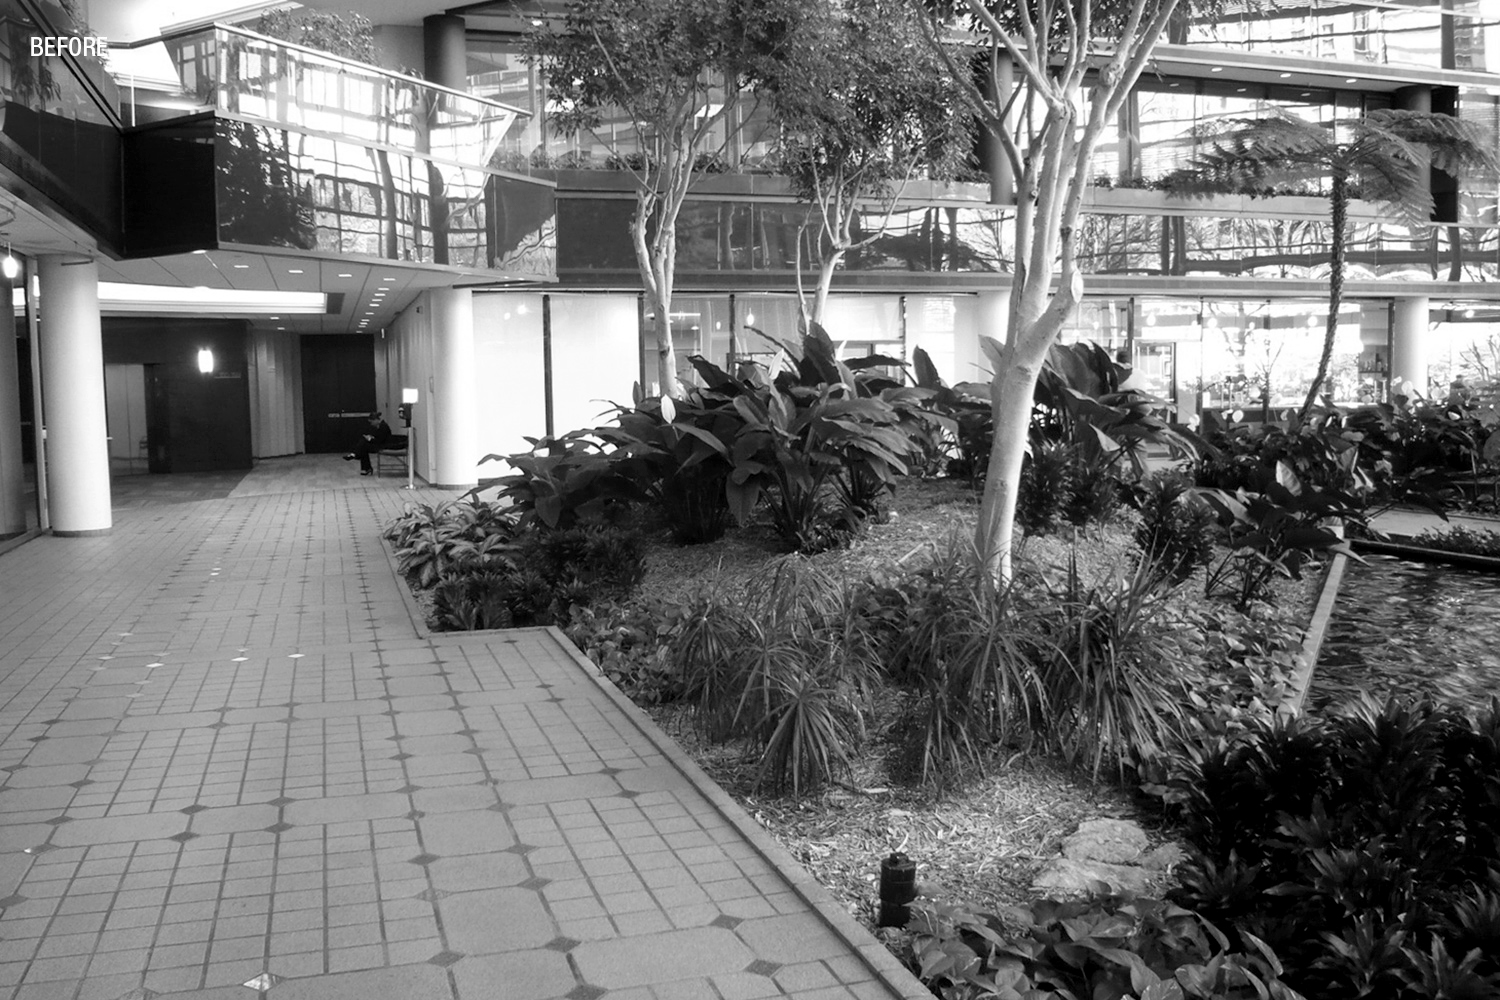 concourse_before3.jpg